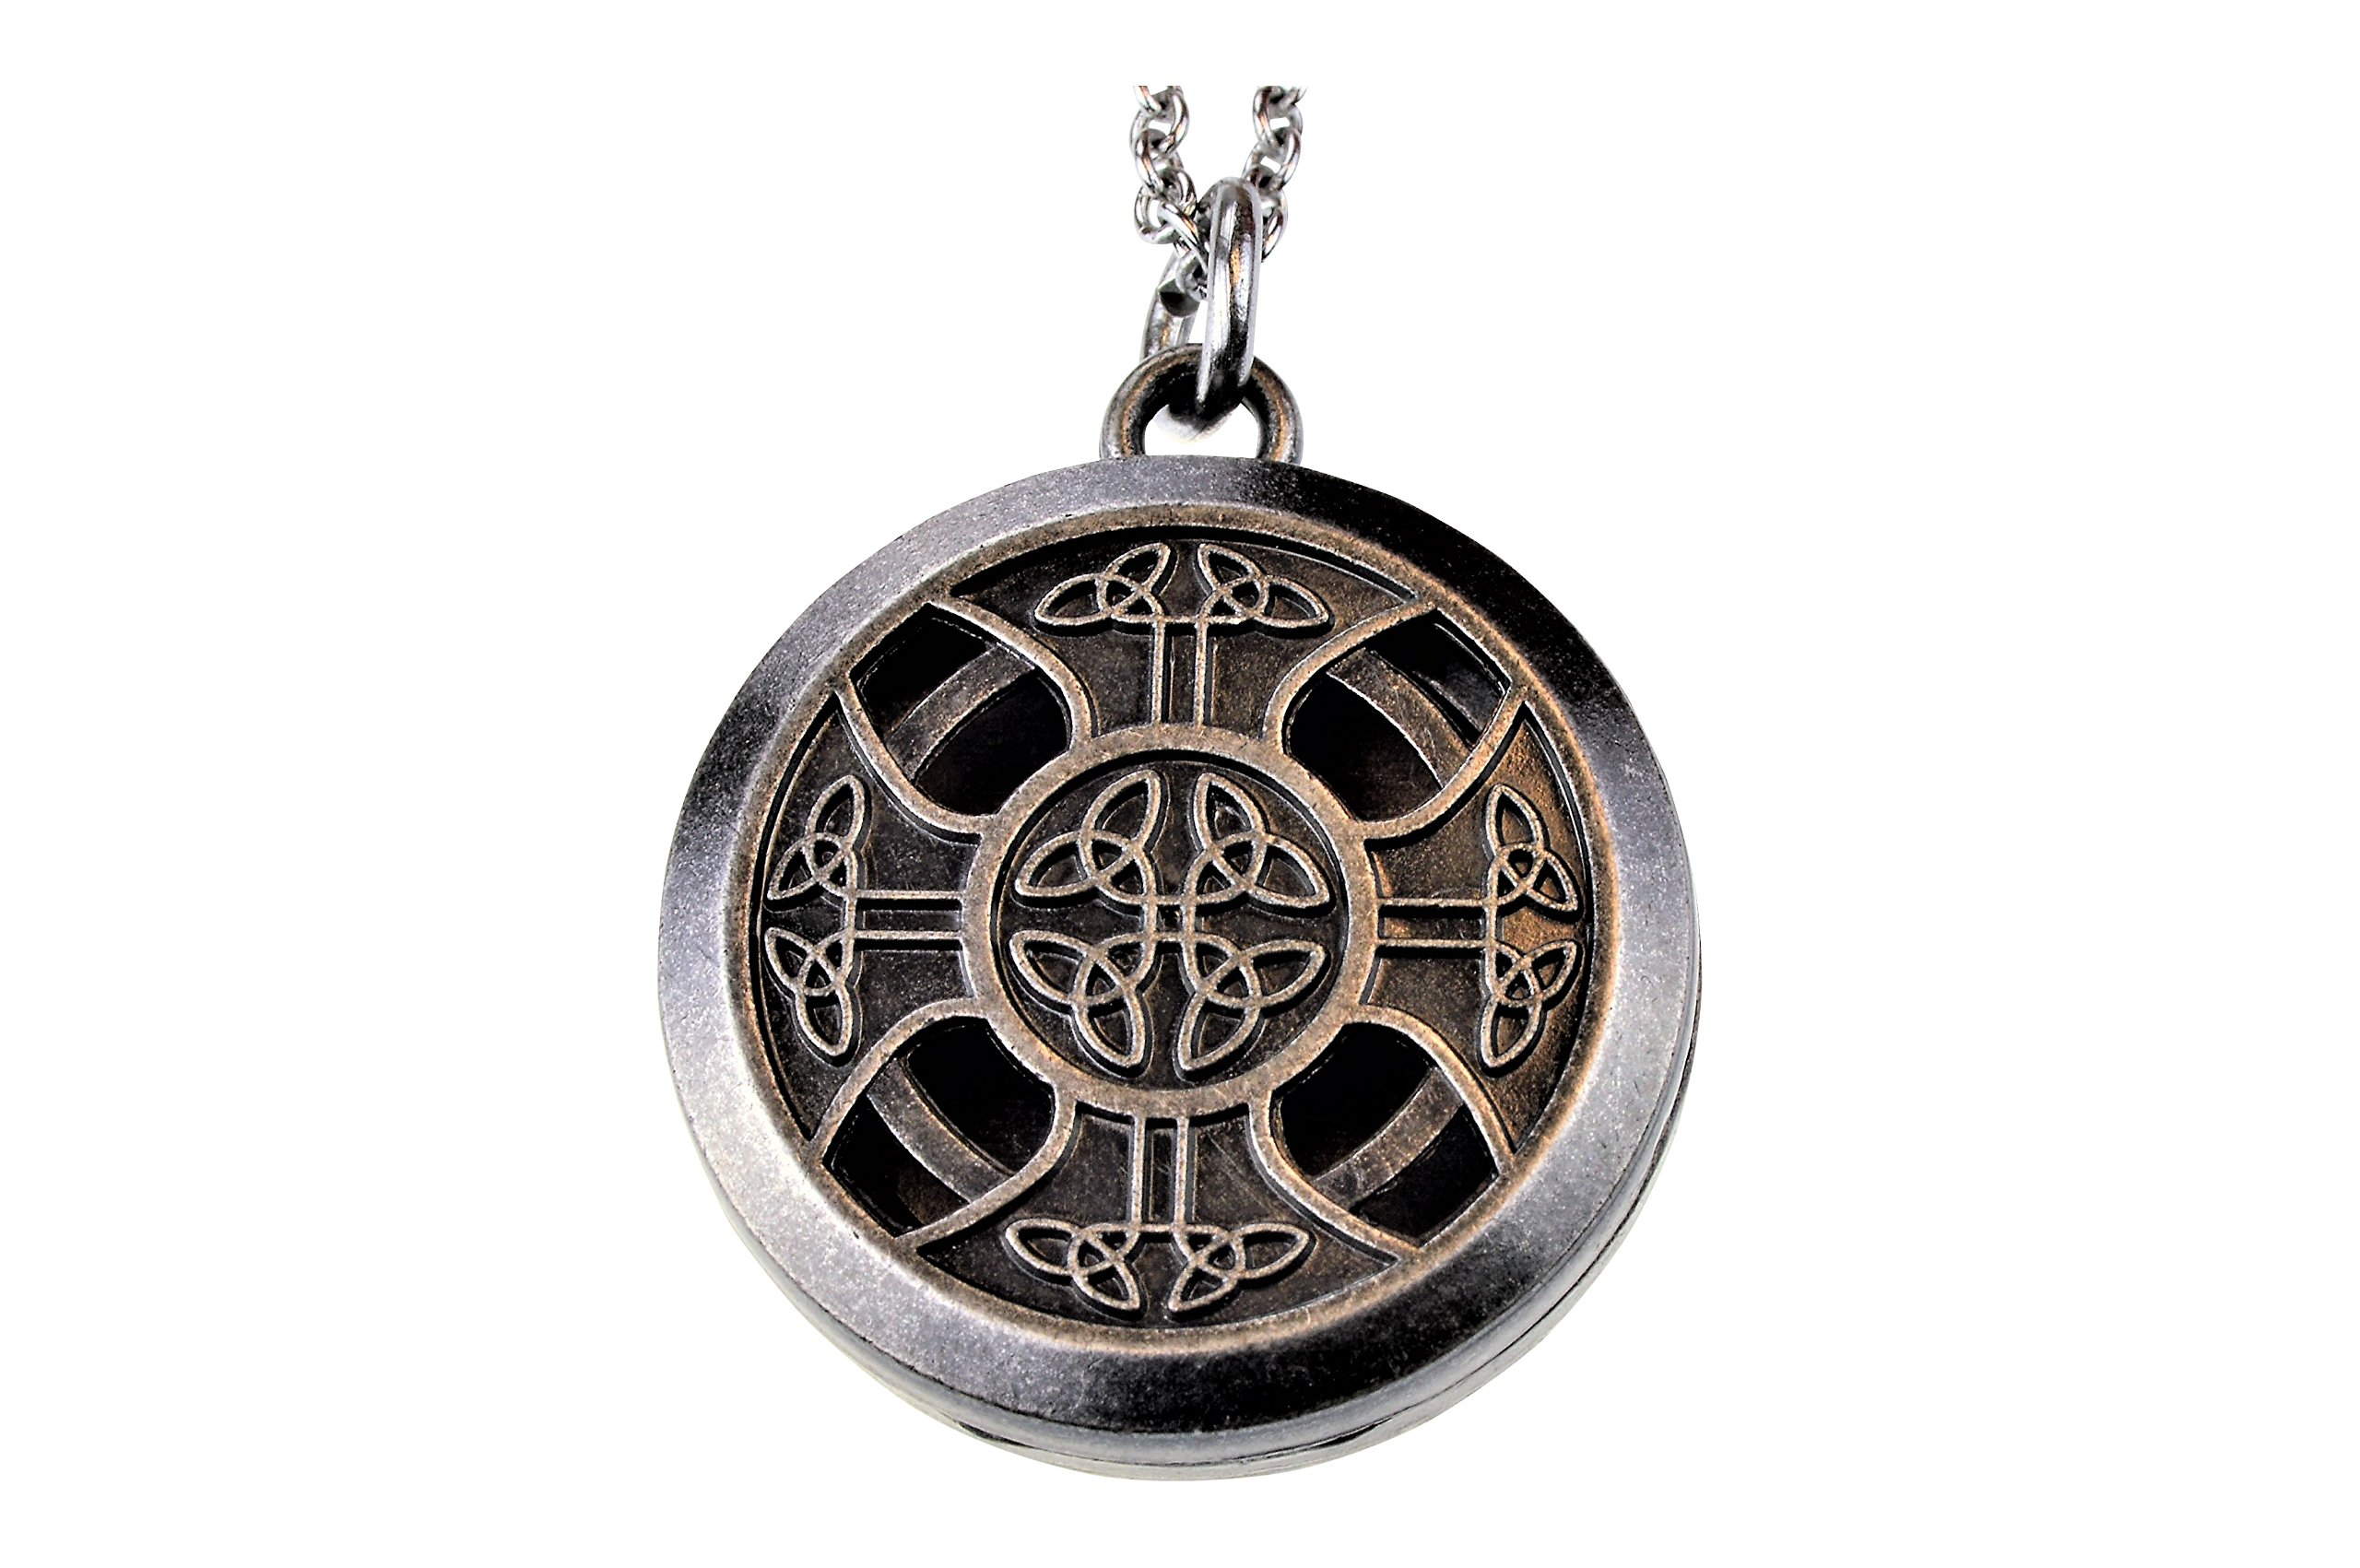 perfume cast with lockets cross product pads tibet celtic tierra filigree pendant necklace shape colorful oil heart diffuser silver store essential ball